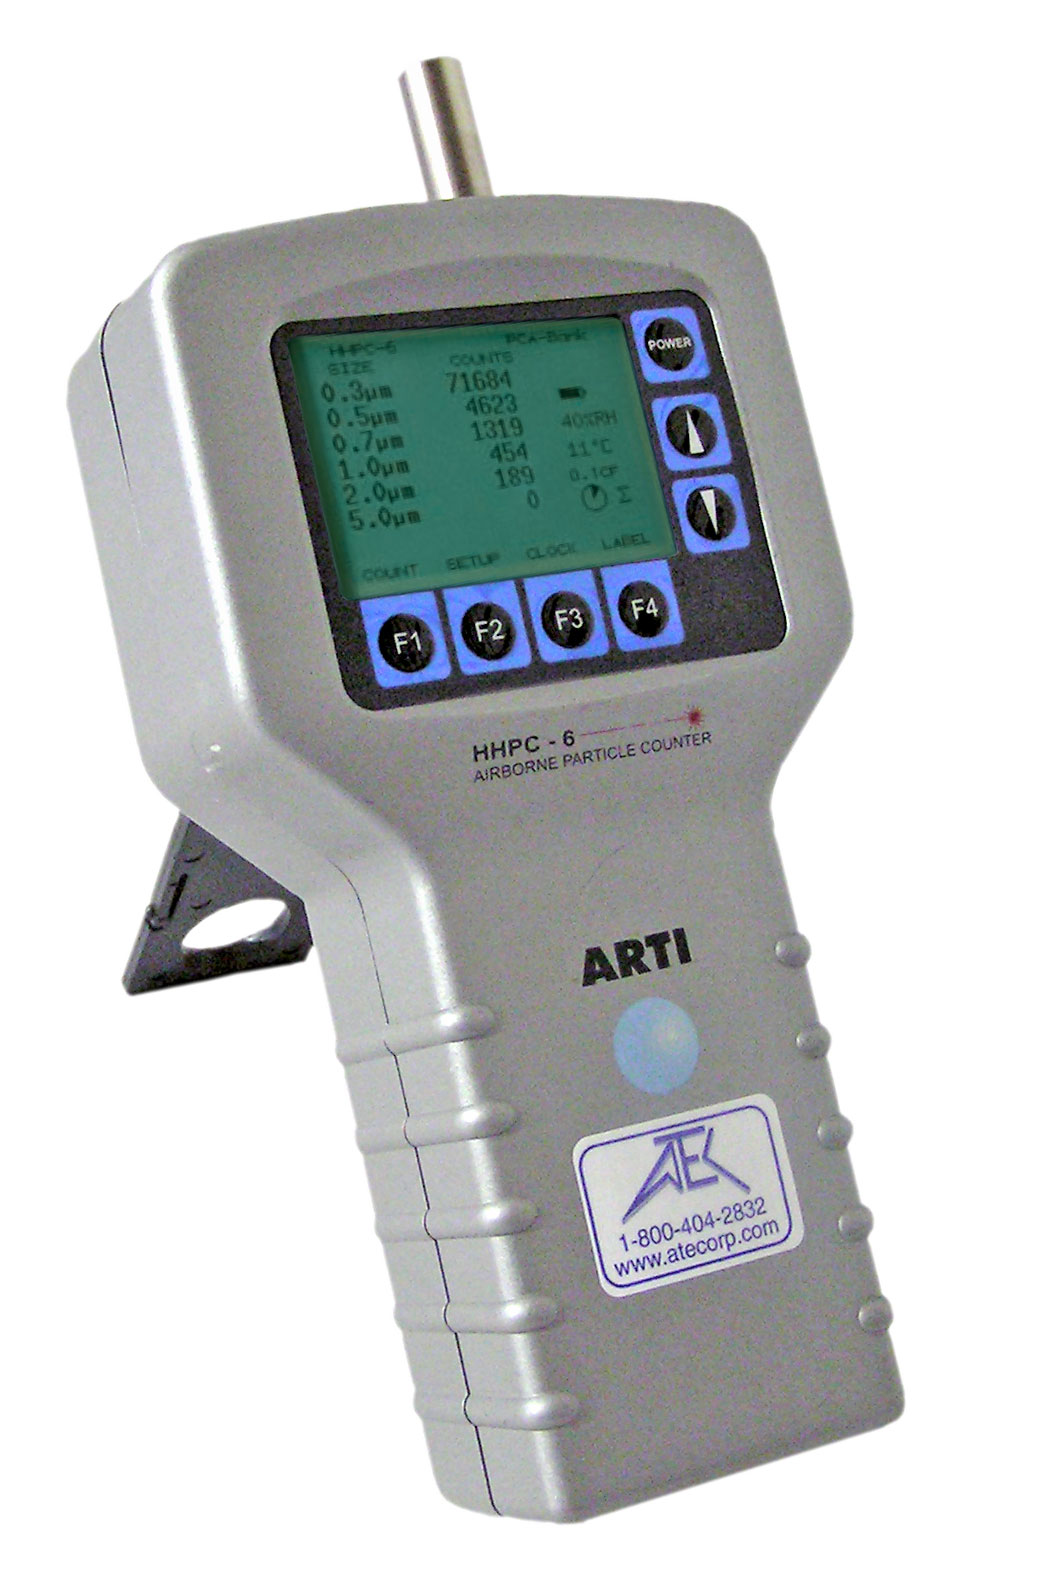 Beckman Coulter ARTI/Met One HHPC-6 Mobile Particle Counter